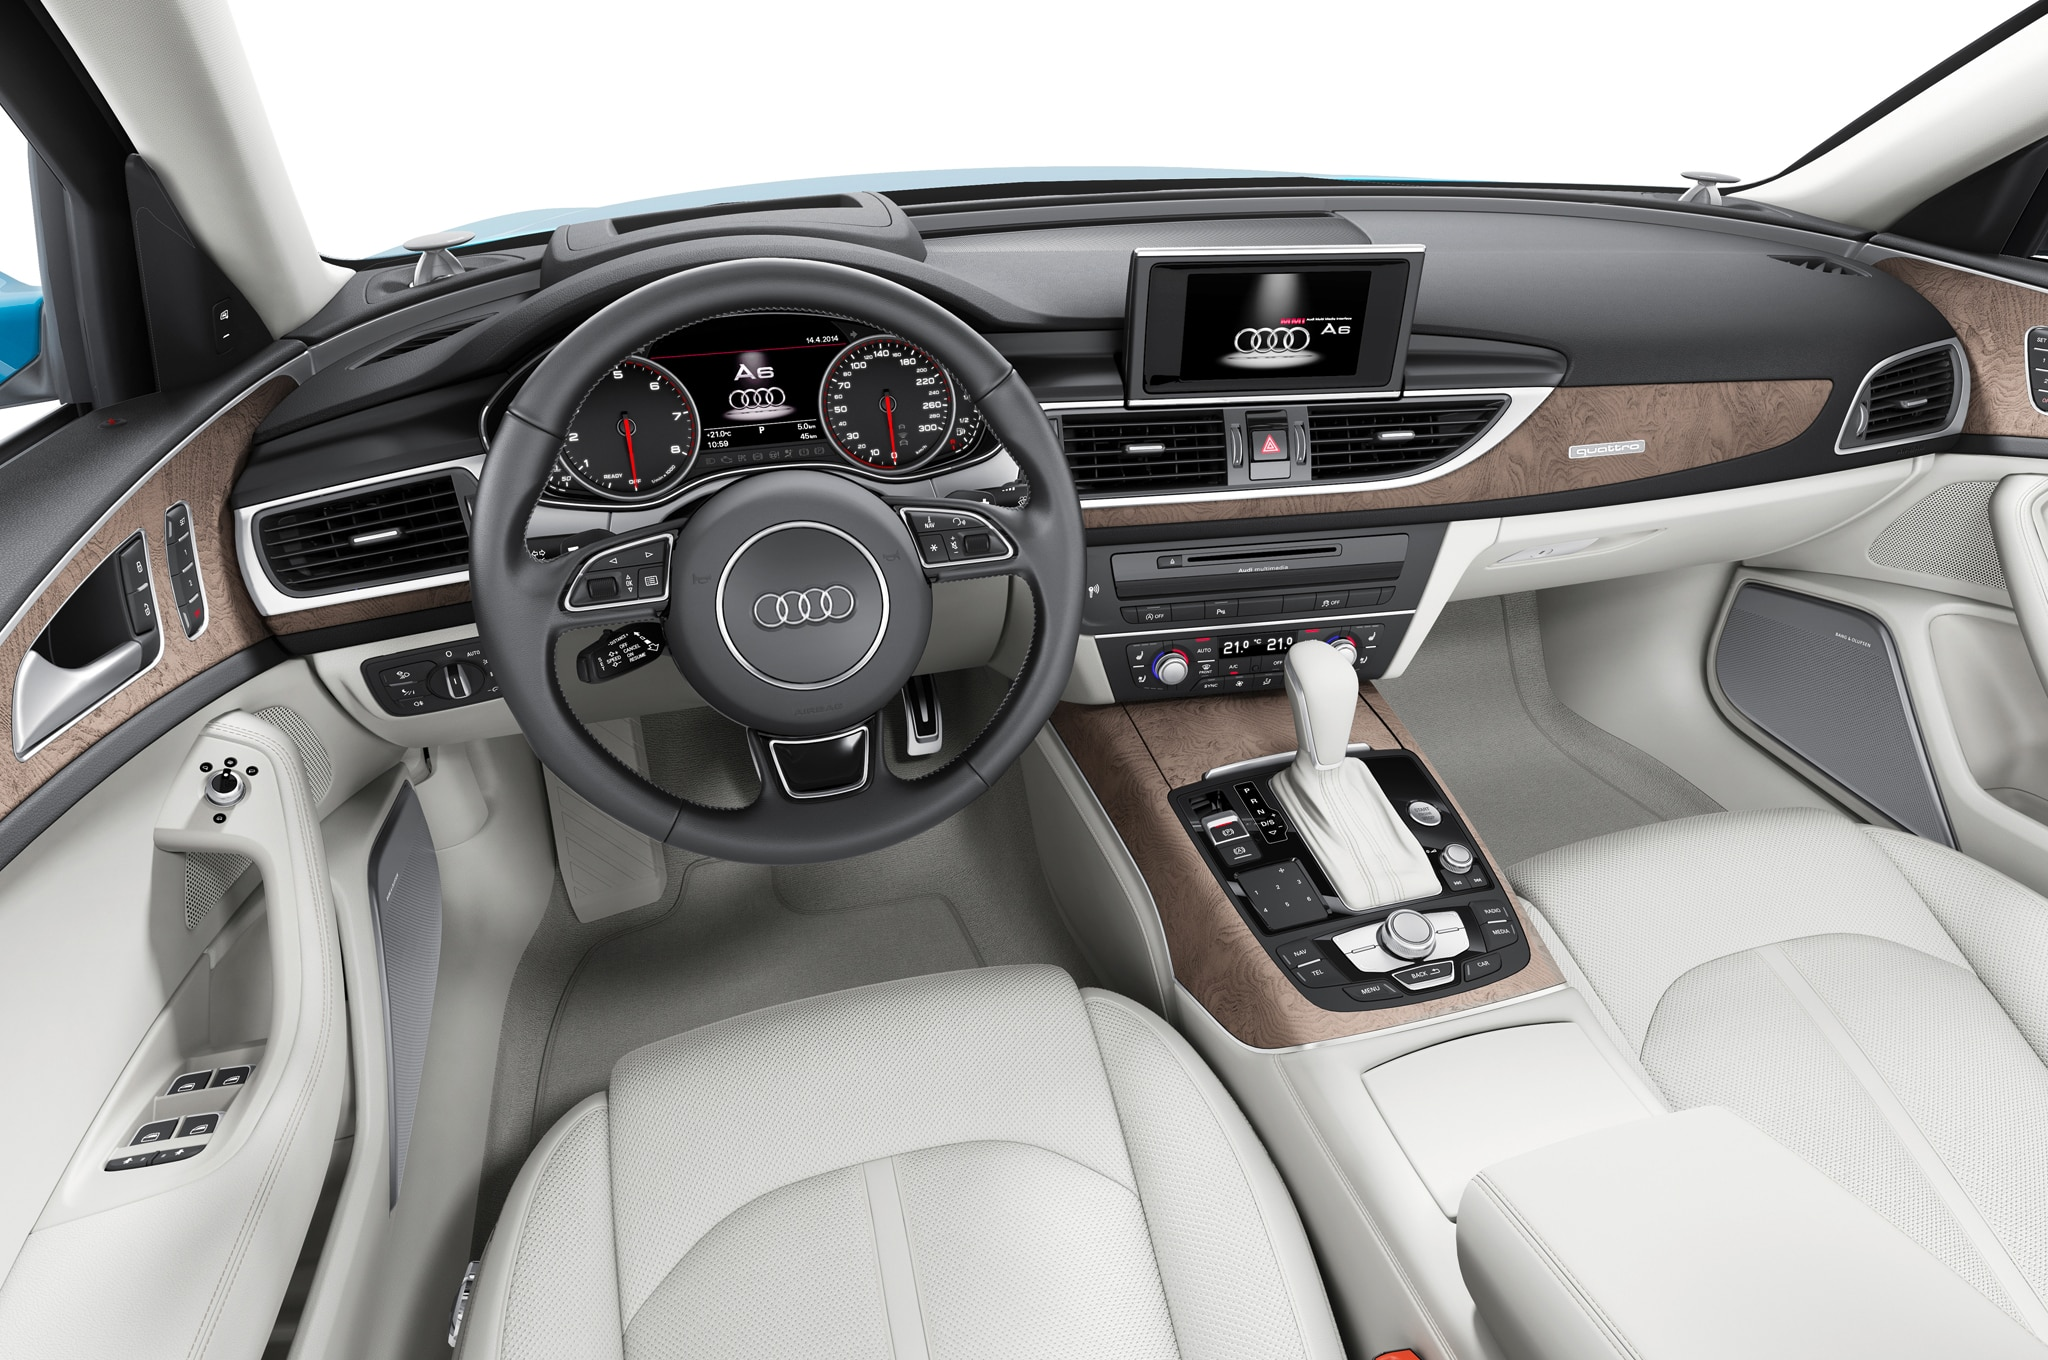 jaguar interiors to write interior plastics posted analysis august driven on size audi full